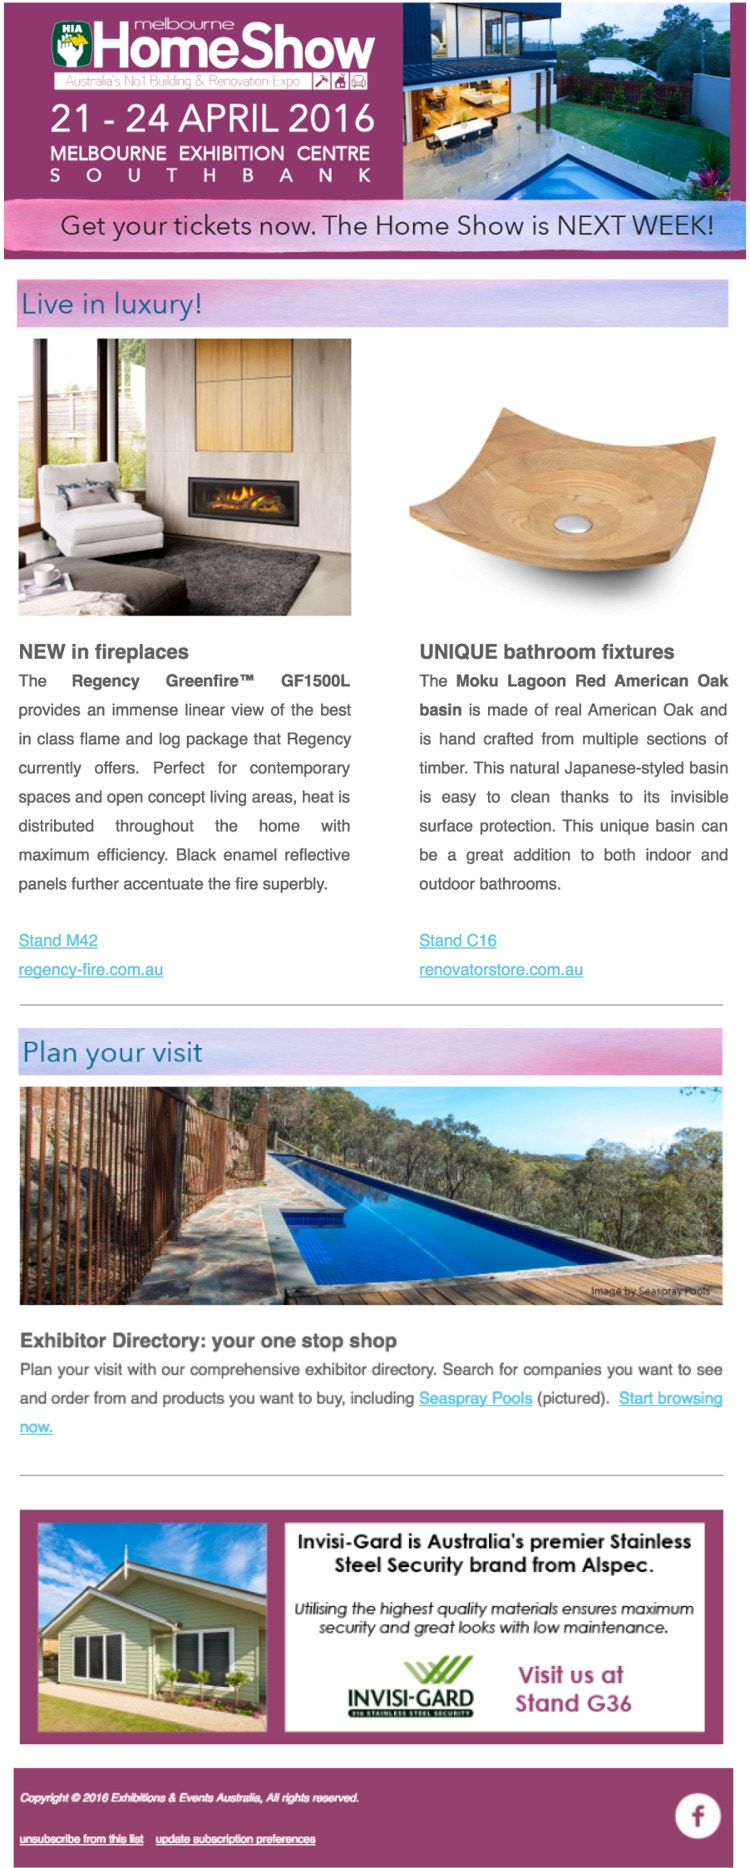 Wooden basin - HIA home show featured product